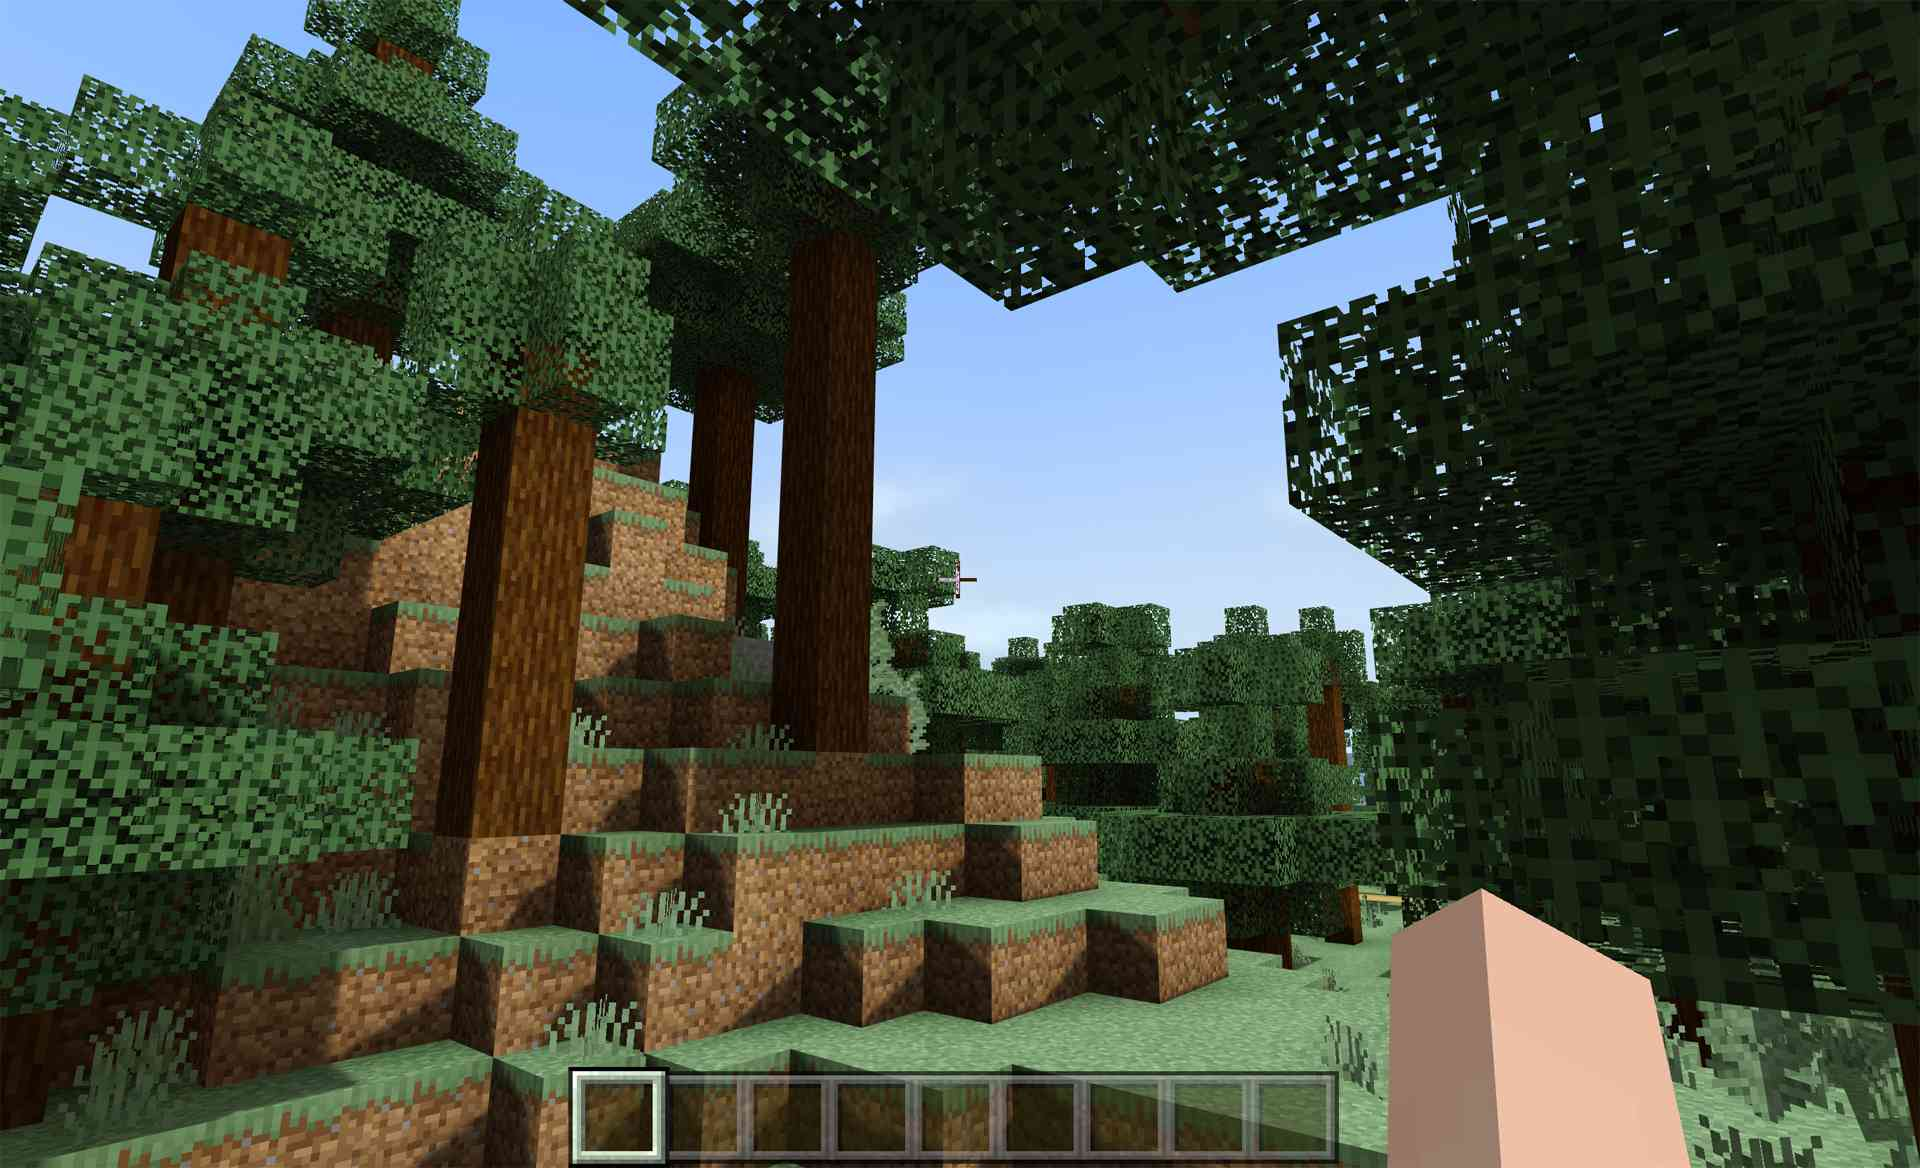 Minecraft shaders installed on the Minecraft video game on Windows 10.